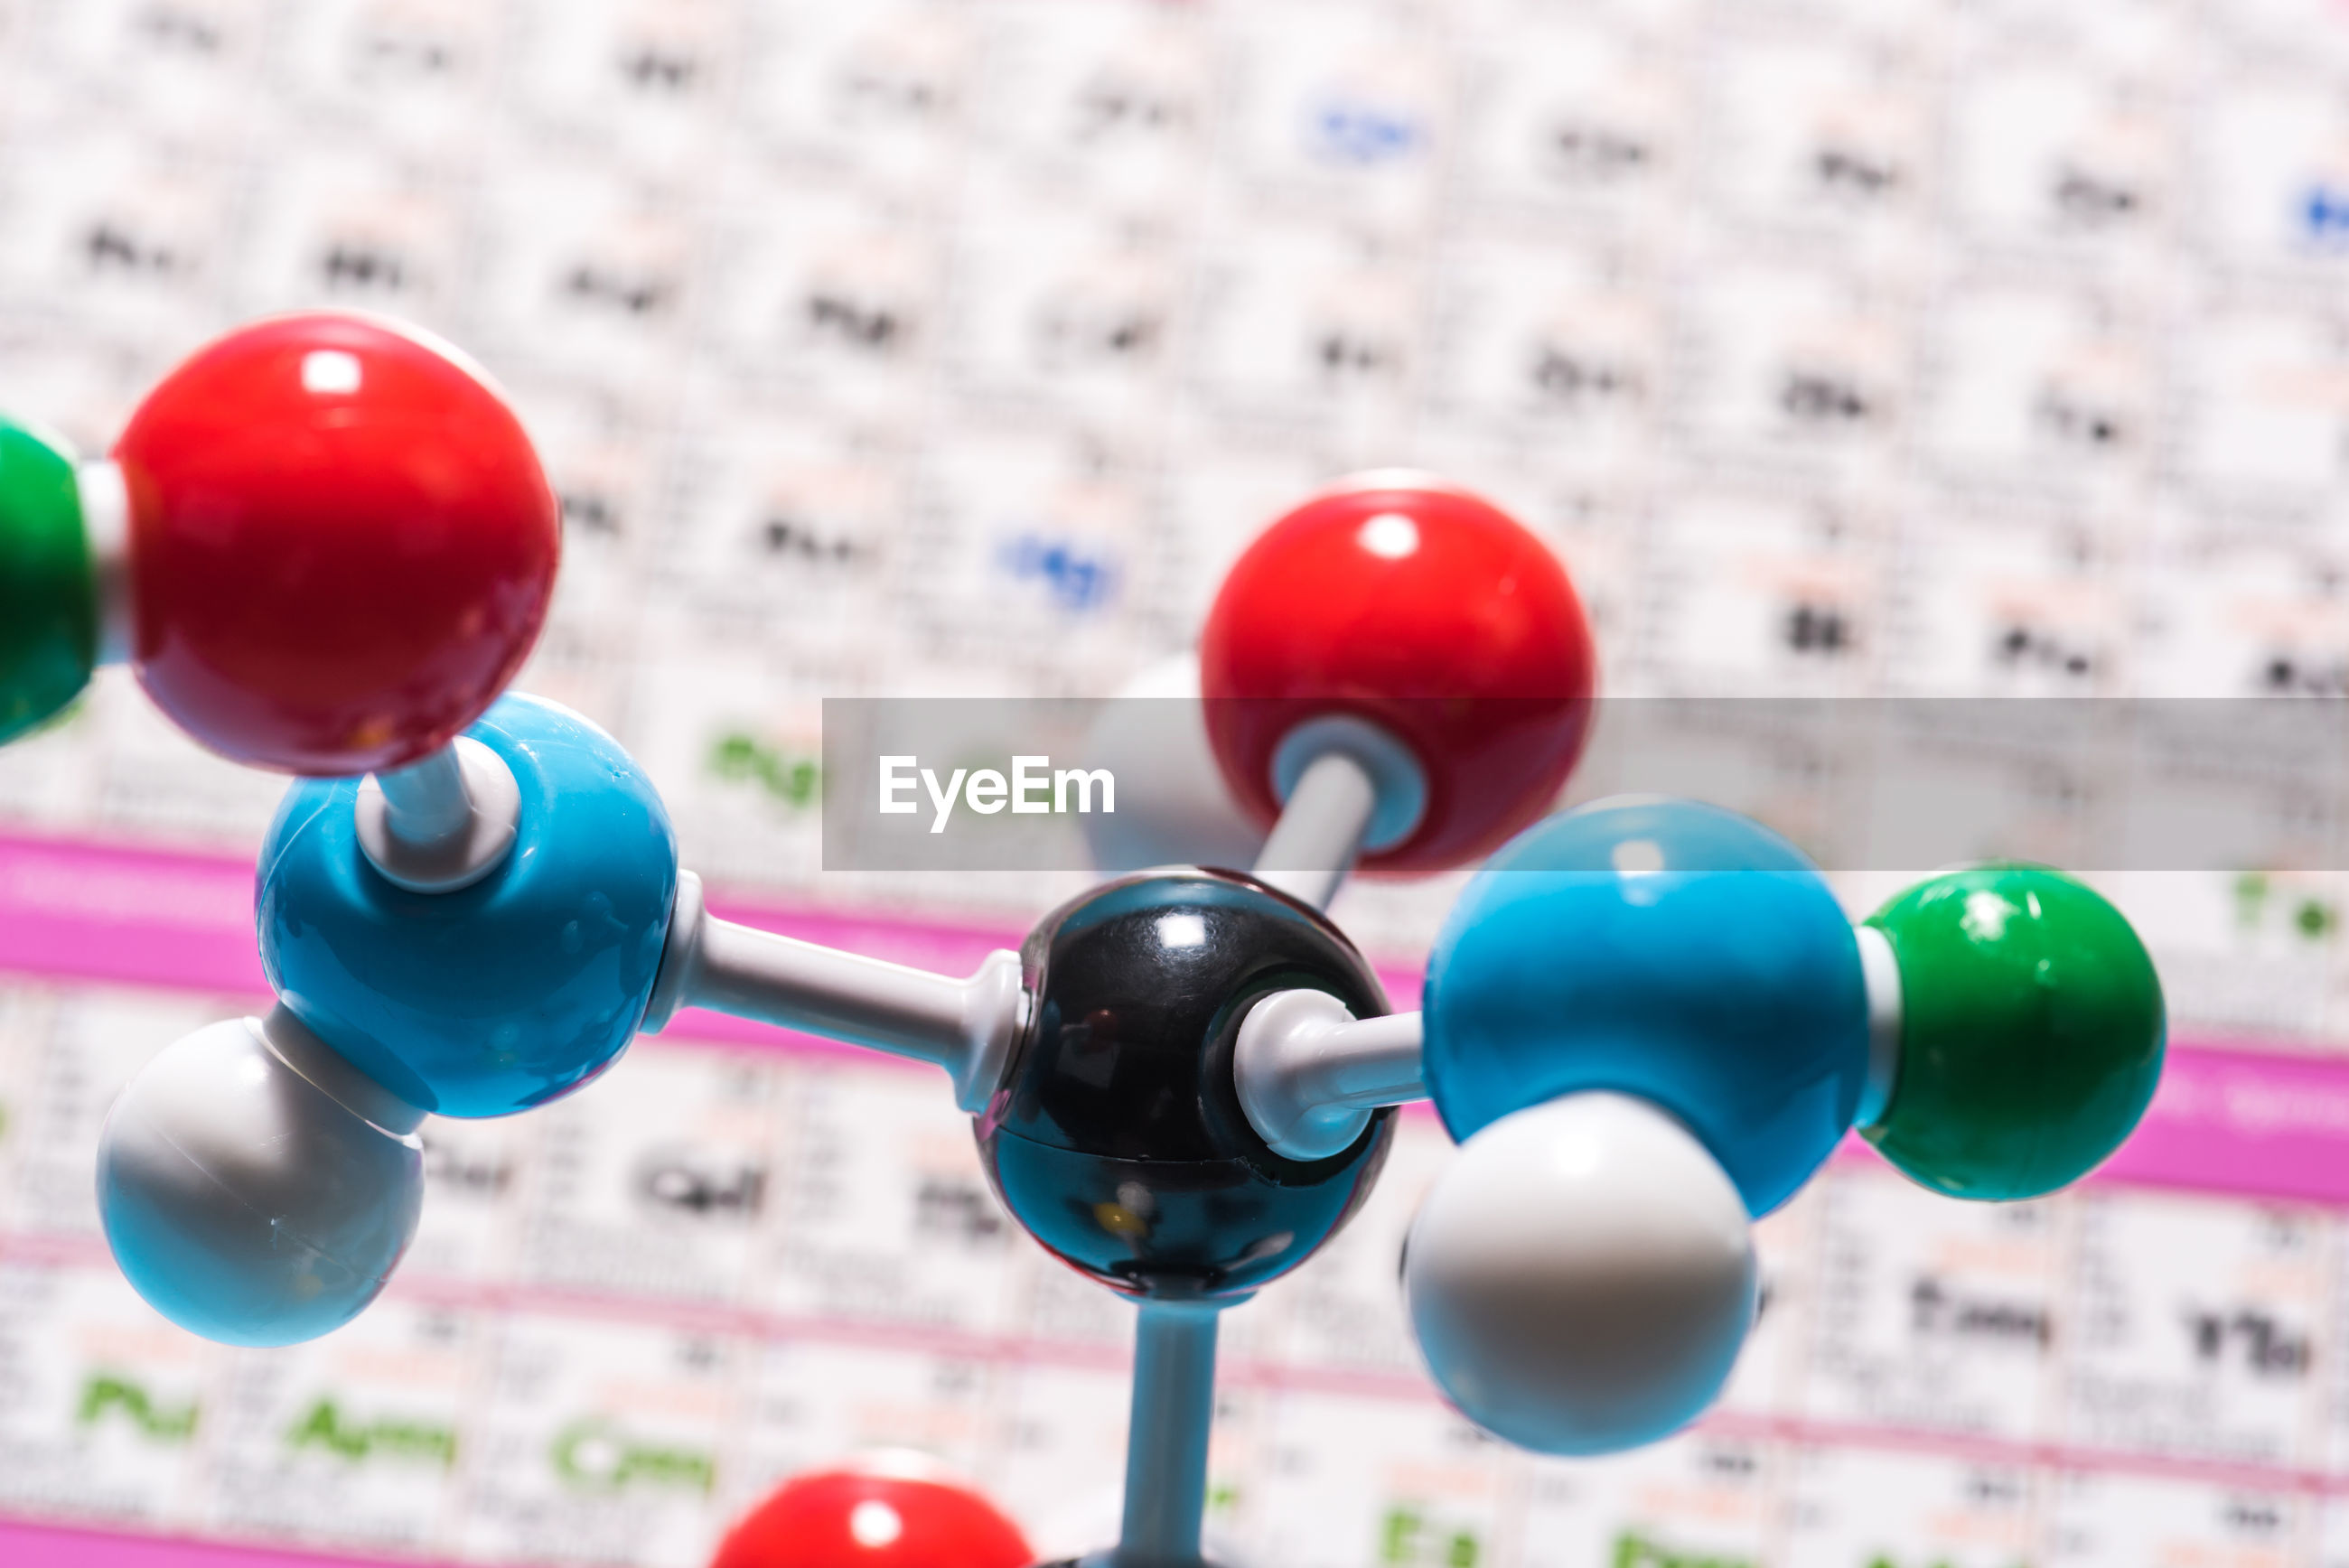 Close-up of colorful molecules model